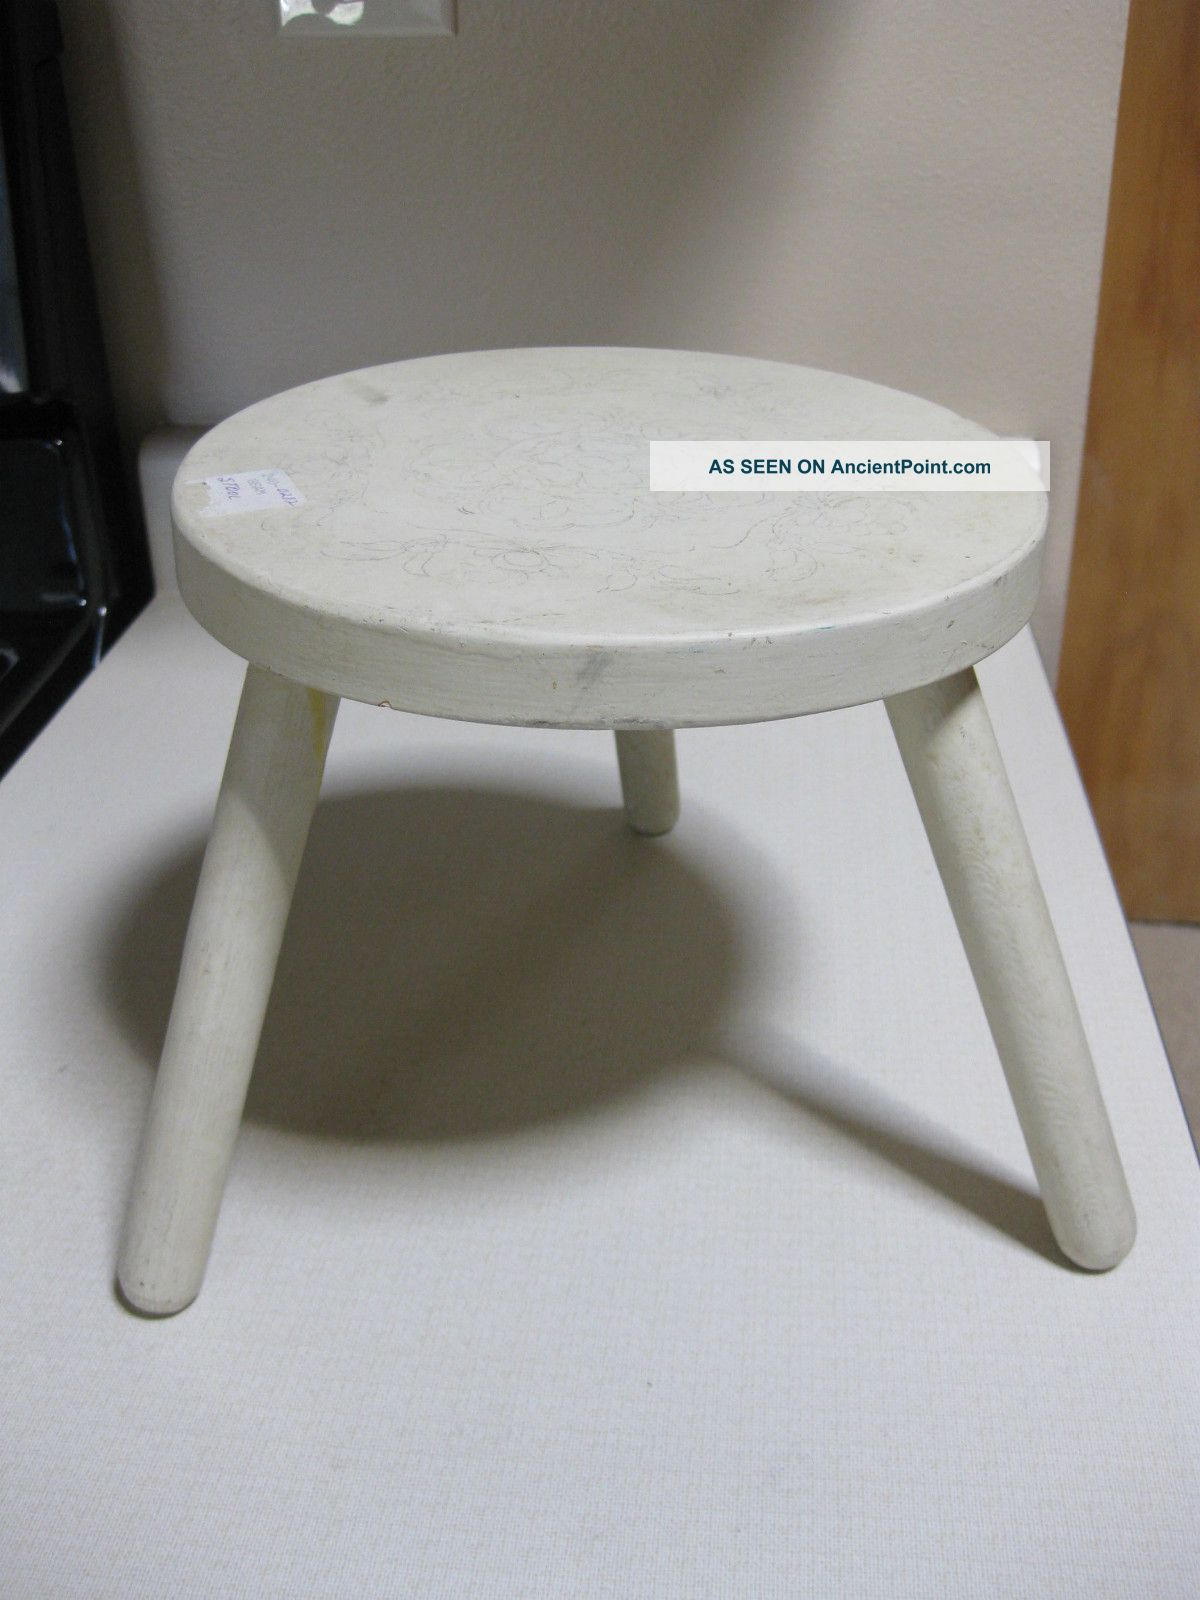 Antique Lovely White Wooden Stool W/ Fancy Penicl Flower Design Primitive Sturdy 1800-1899 photo